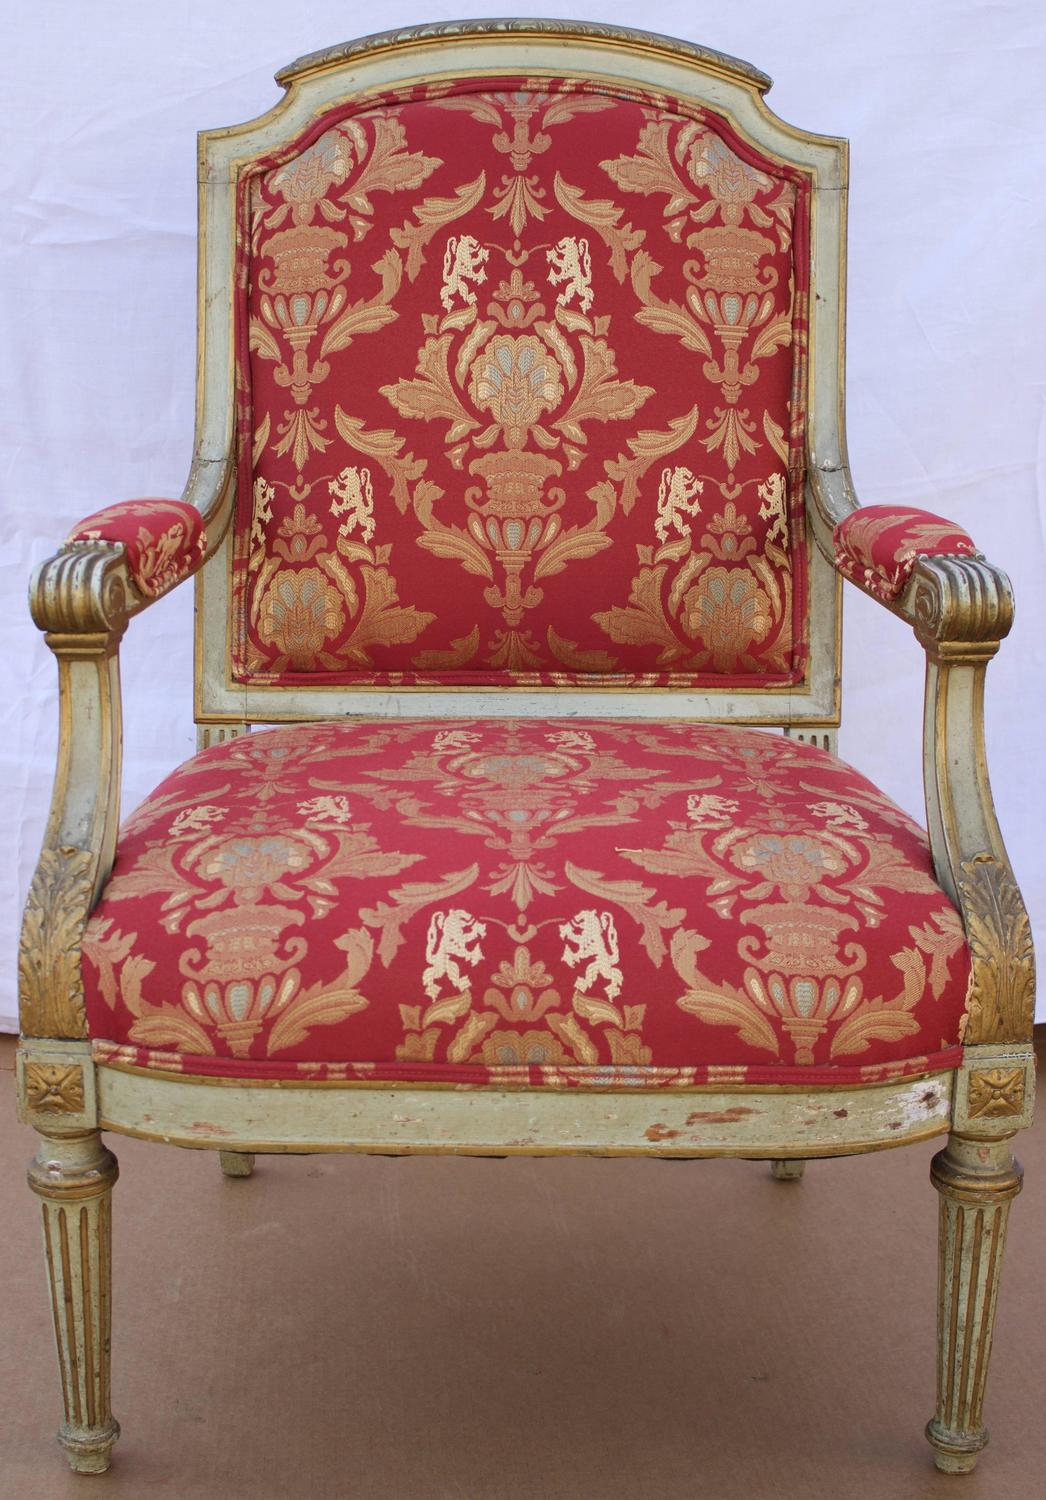 19th century french louis xvi style fauteuil for sale at 1stdibs. Black Bedroom Furniture Sets. Home Design Ideas